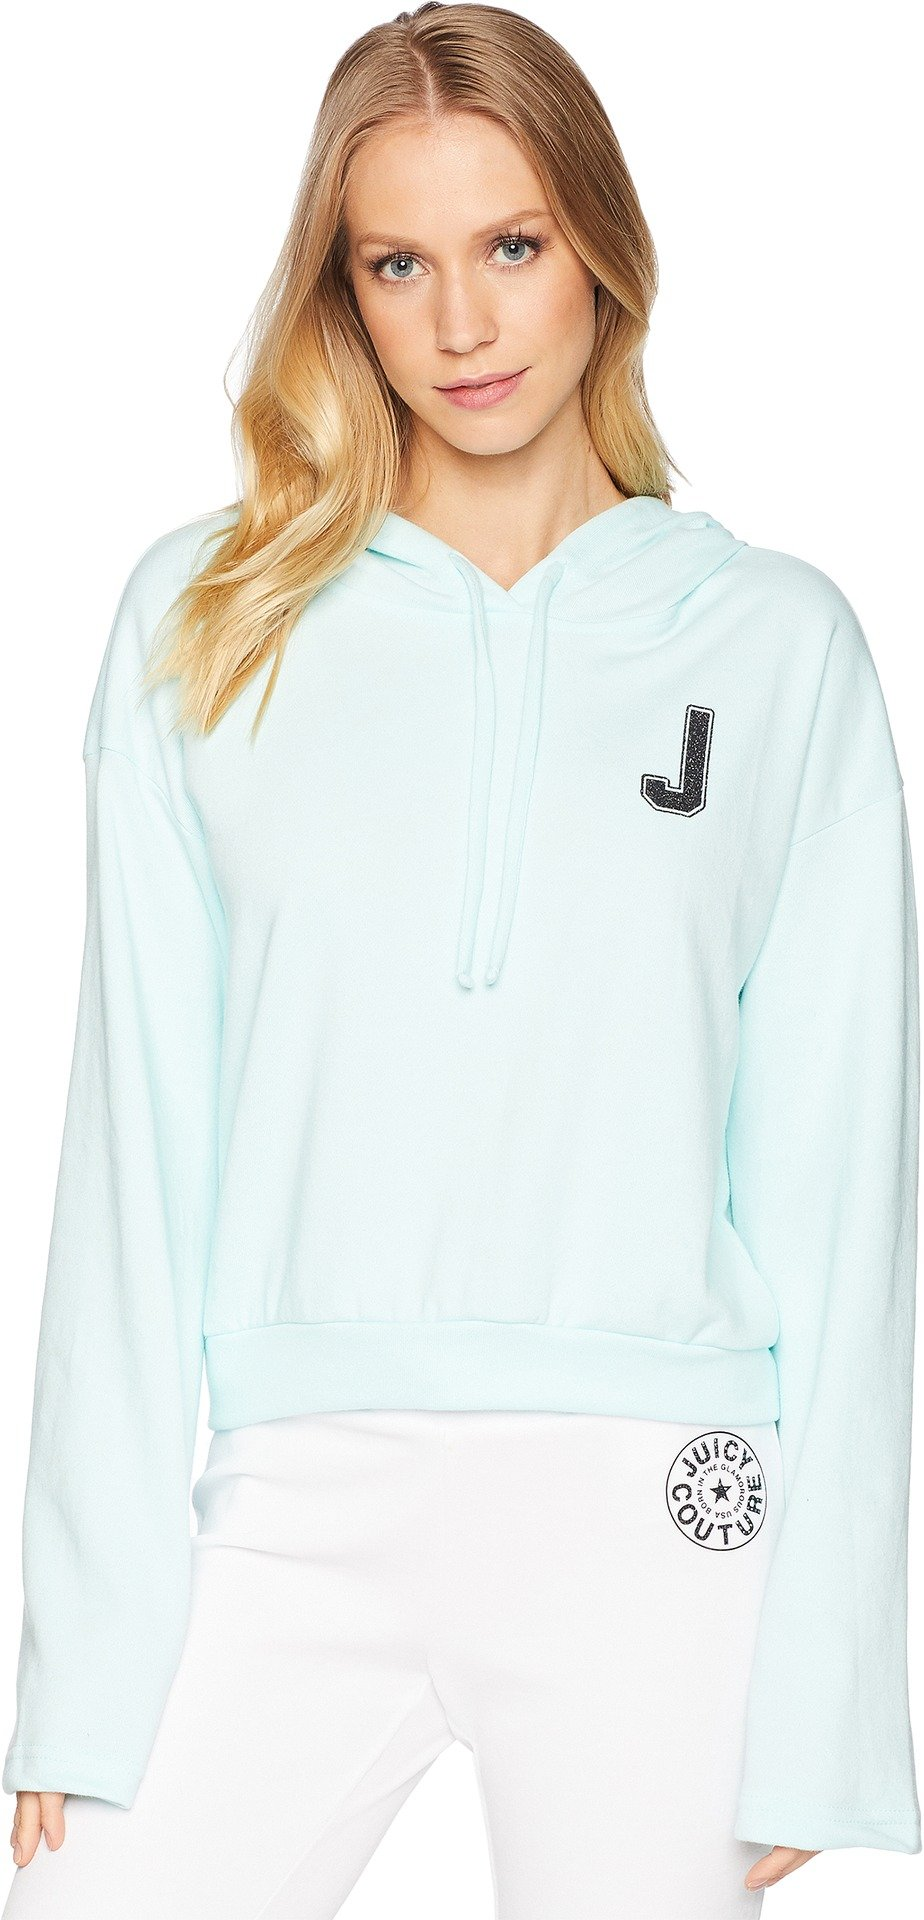 Juicy Couture Womens French Terry Logo Hoodie Blue XL